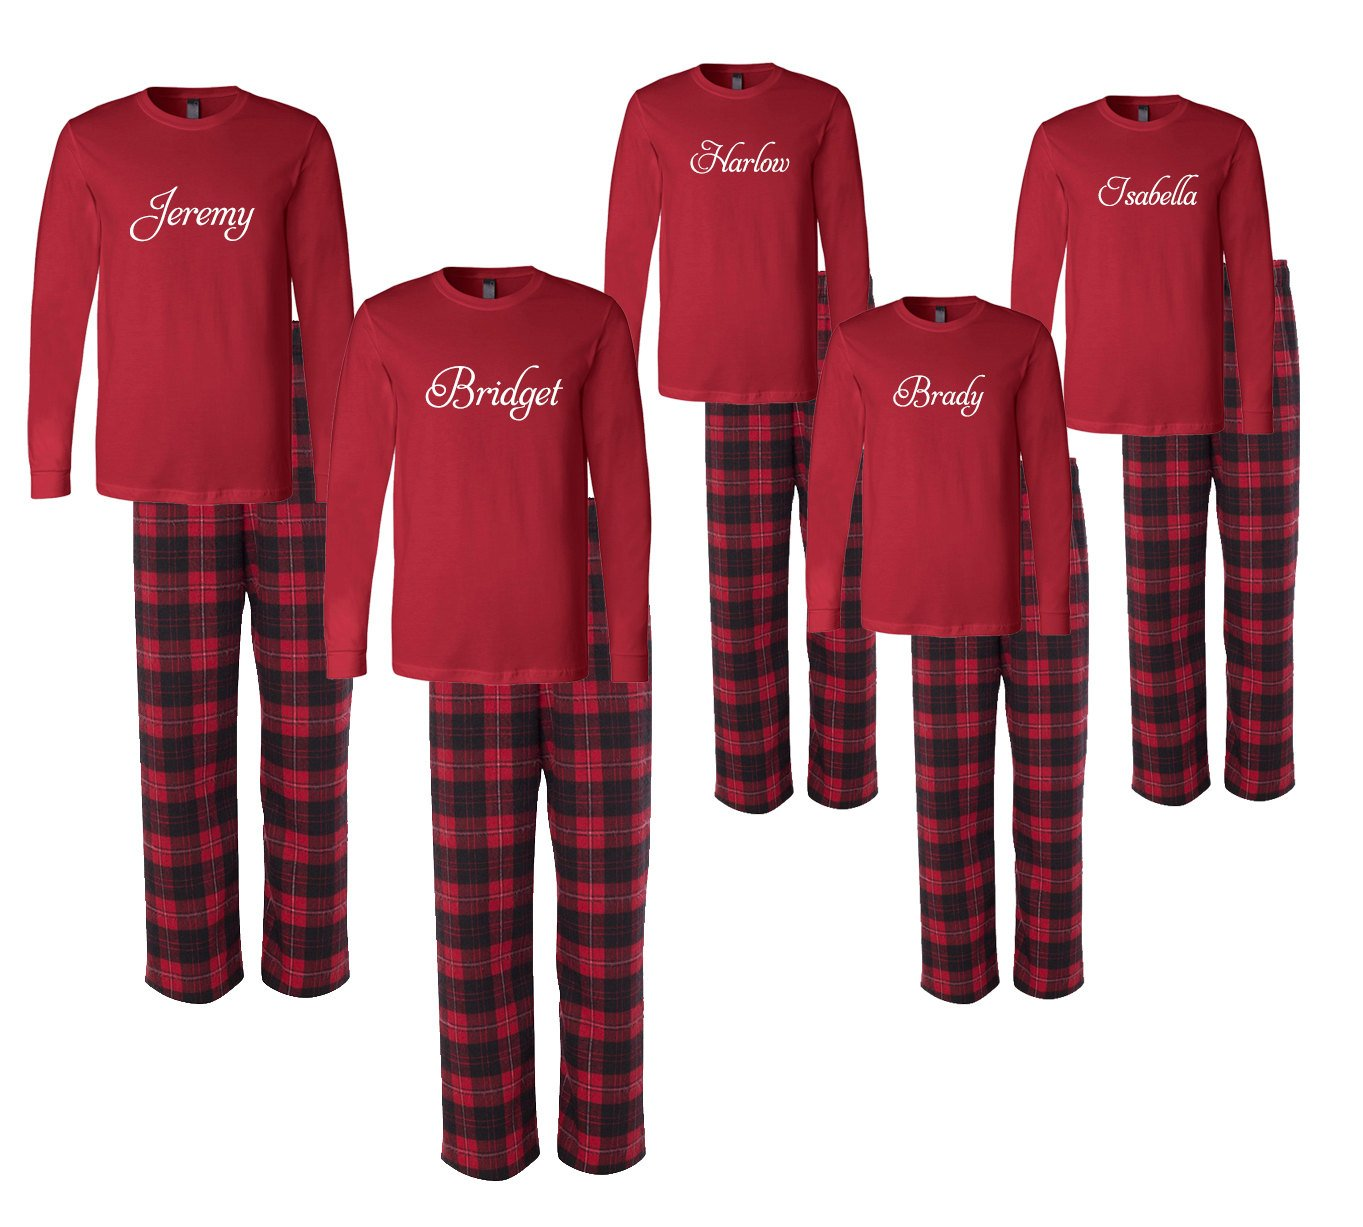 Personalized Family Christmas Pajamas - Black and Red (Set of 5)